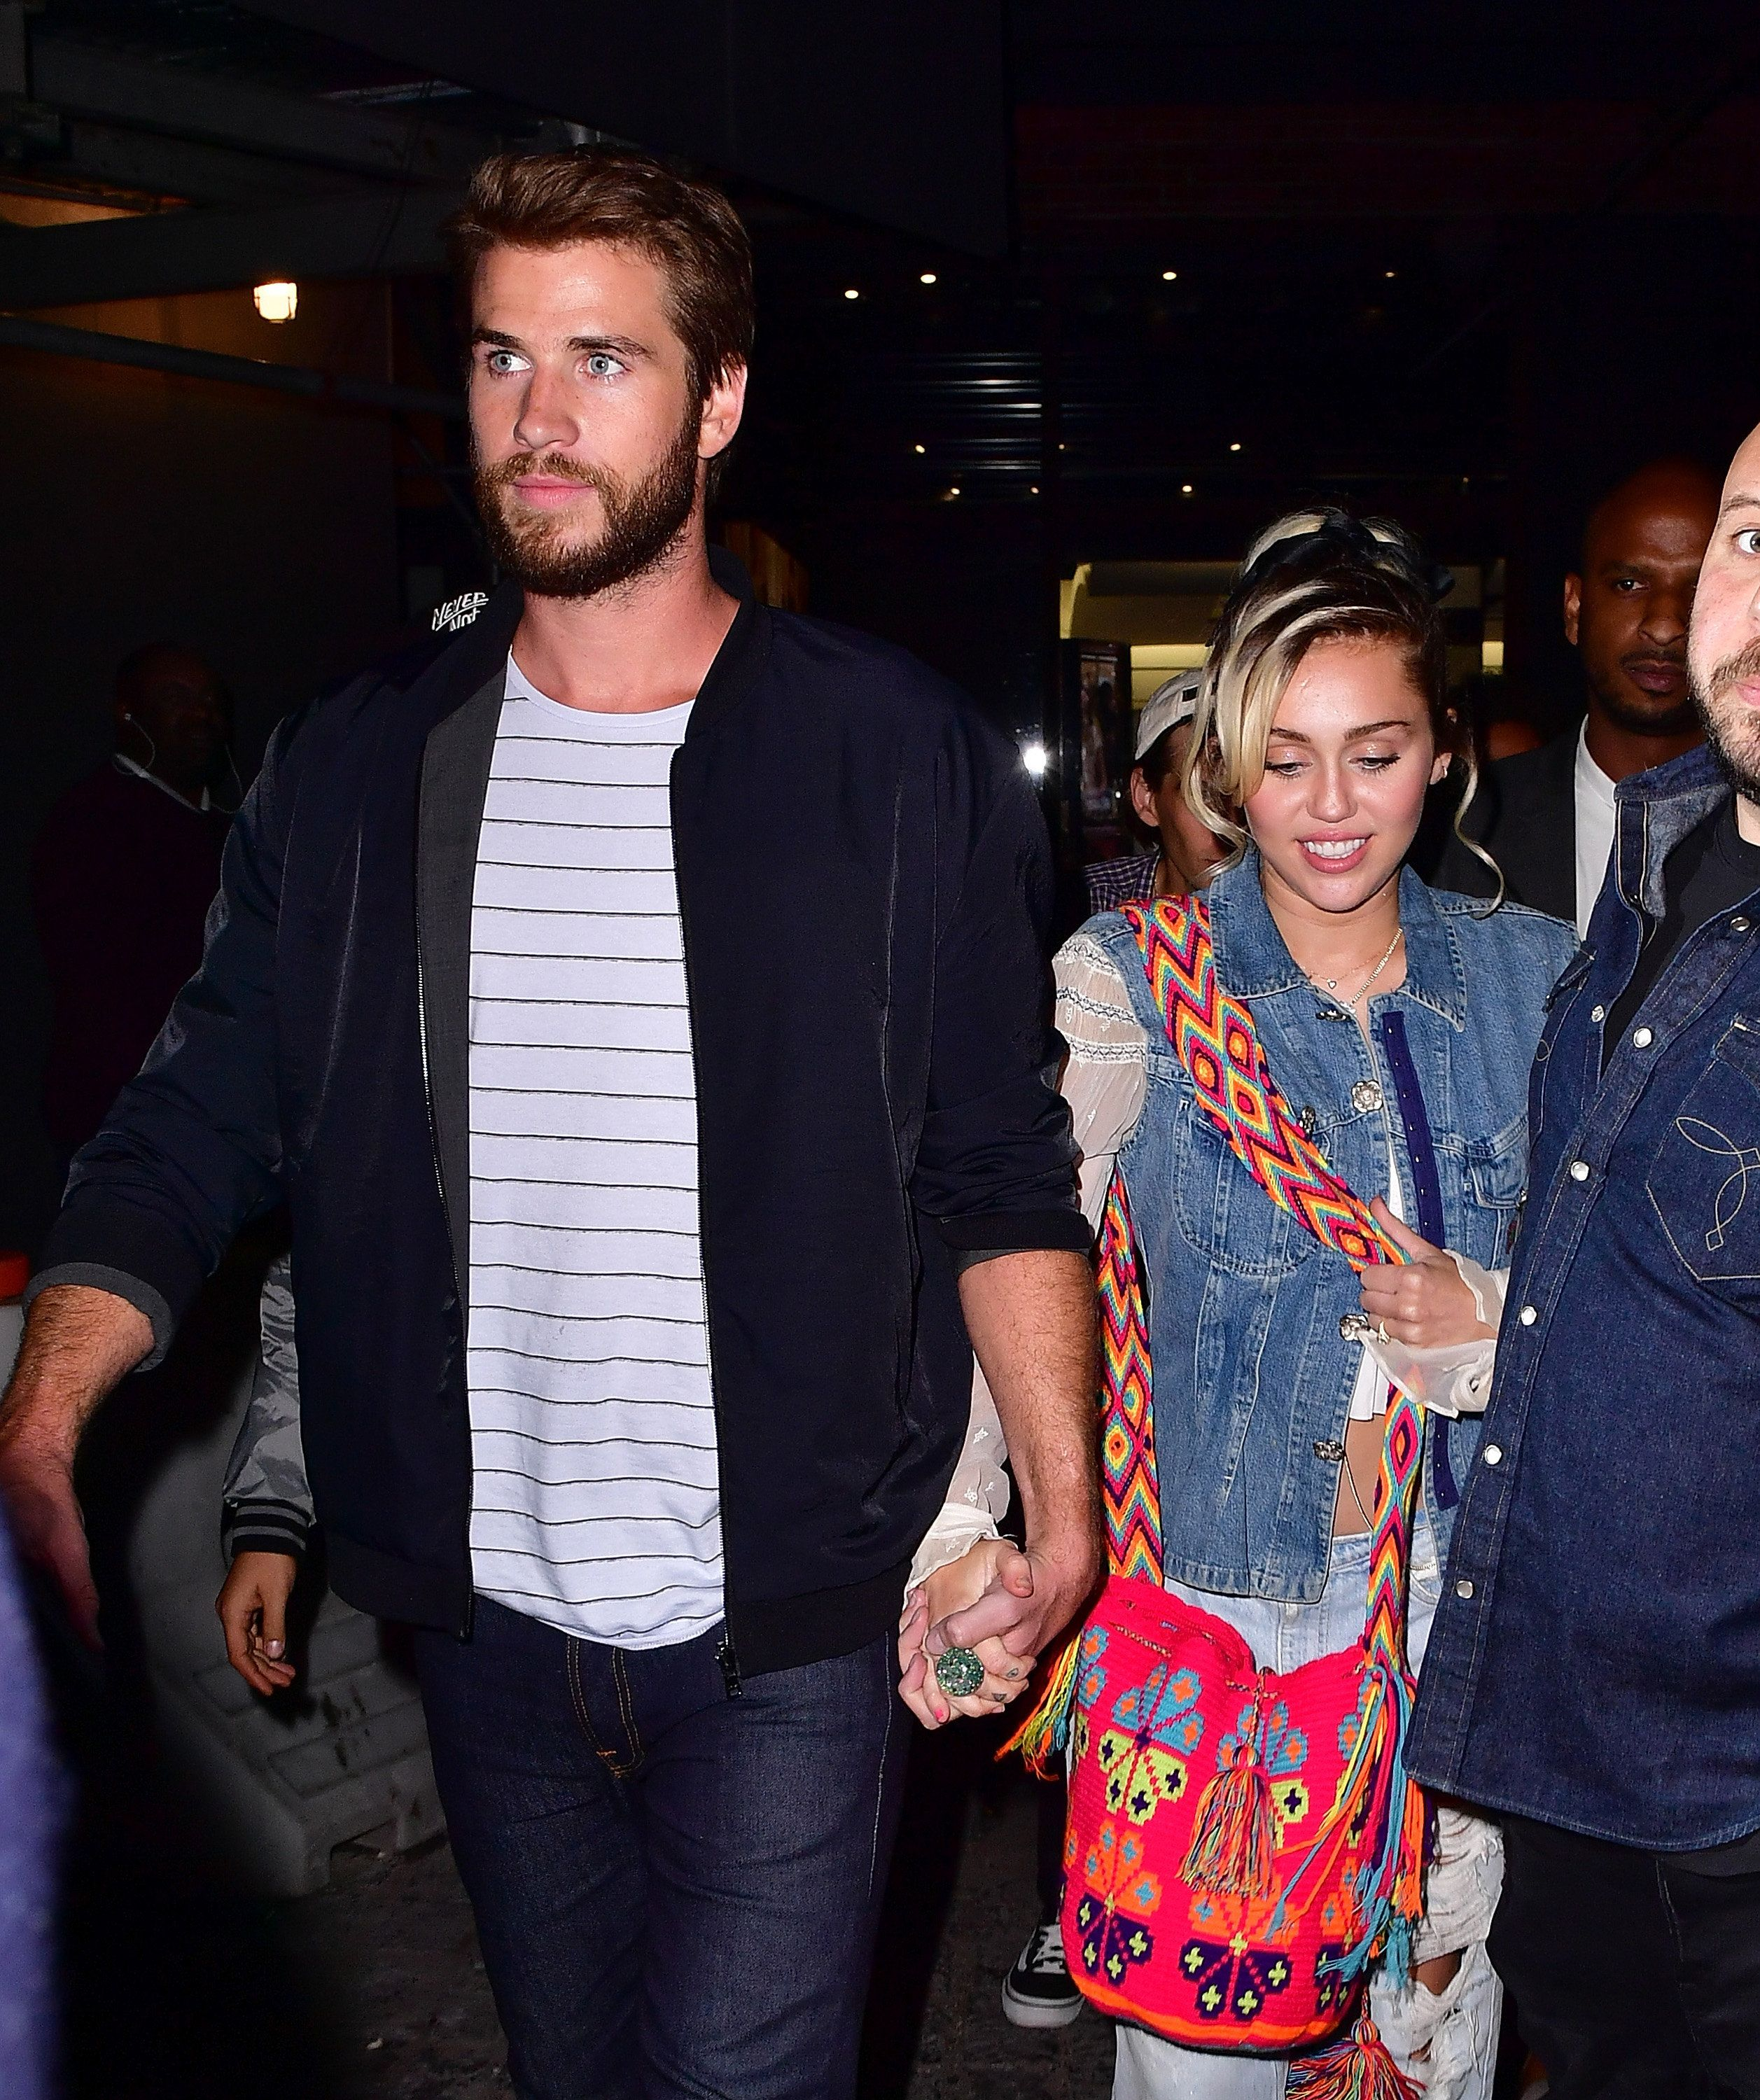 First Look At Miley Cyrus & Liam Hemsworth Wedding Reception